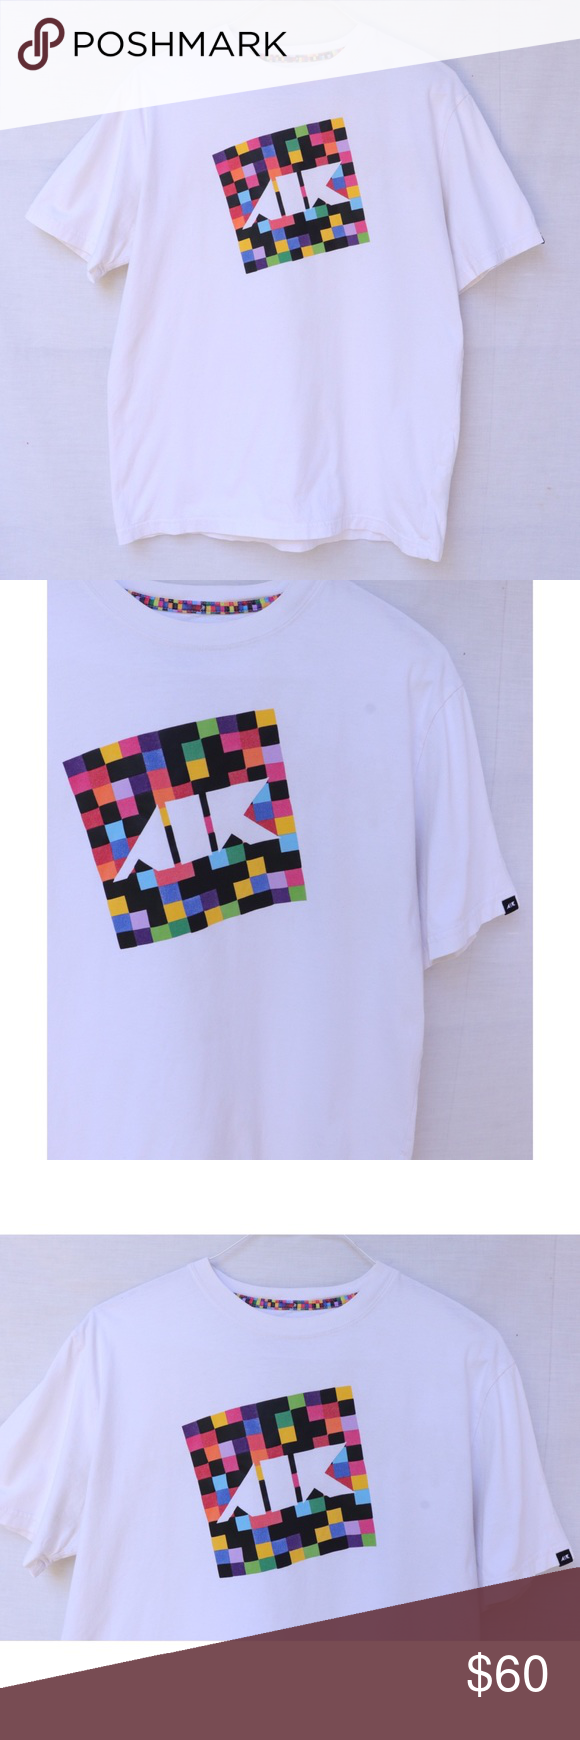 RARE Colorful Checkered Nike AIR Graphic TShirt Nike air